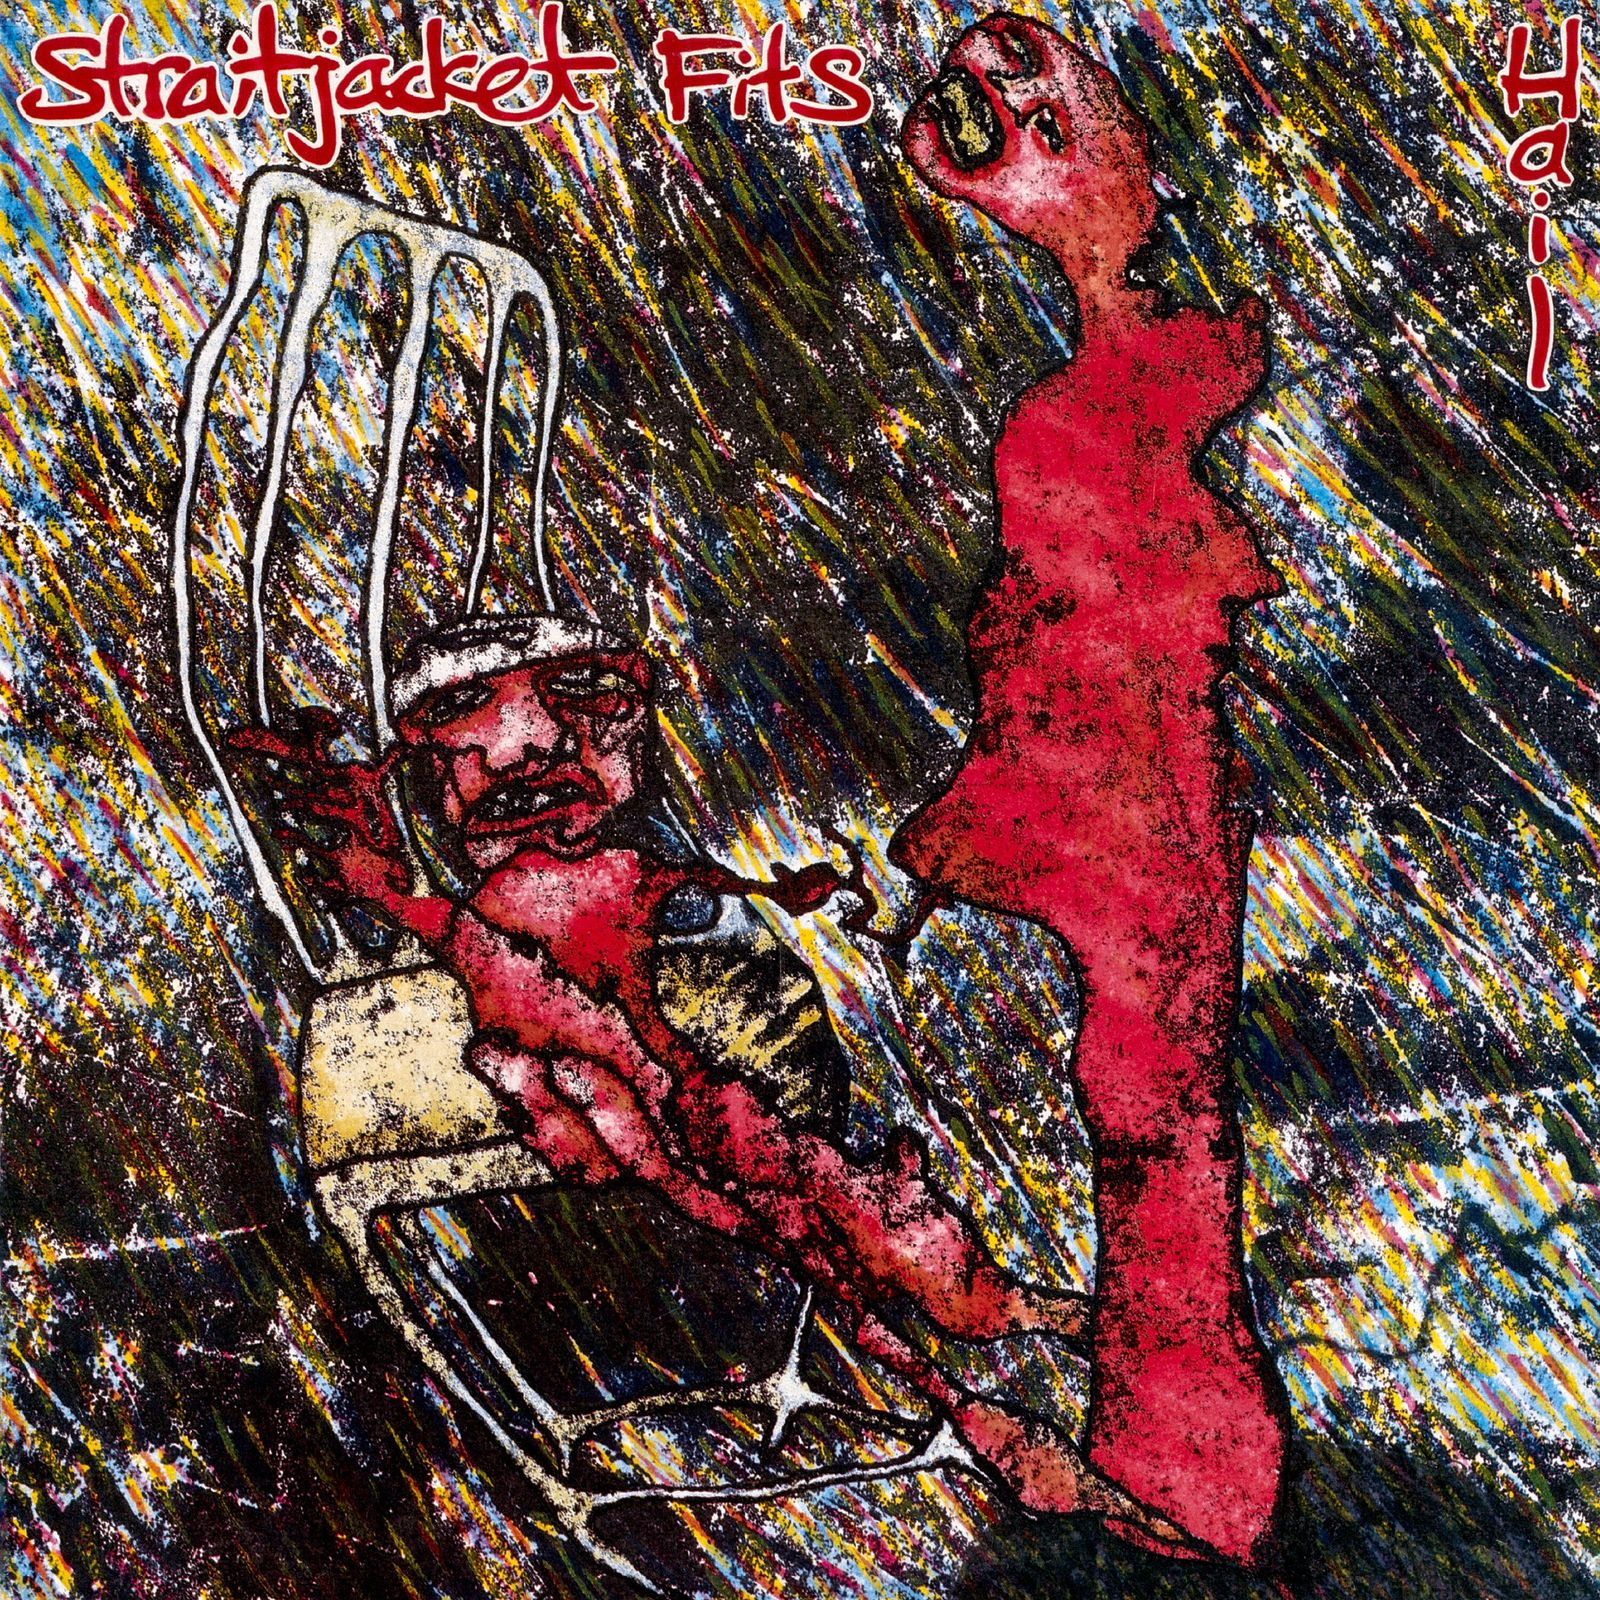 Hail - (Reissue) by Straitjacket Fits image